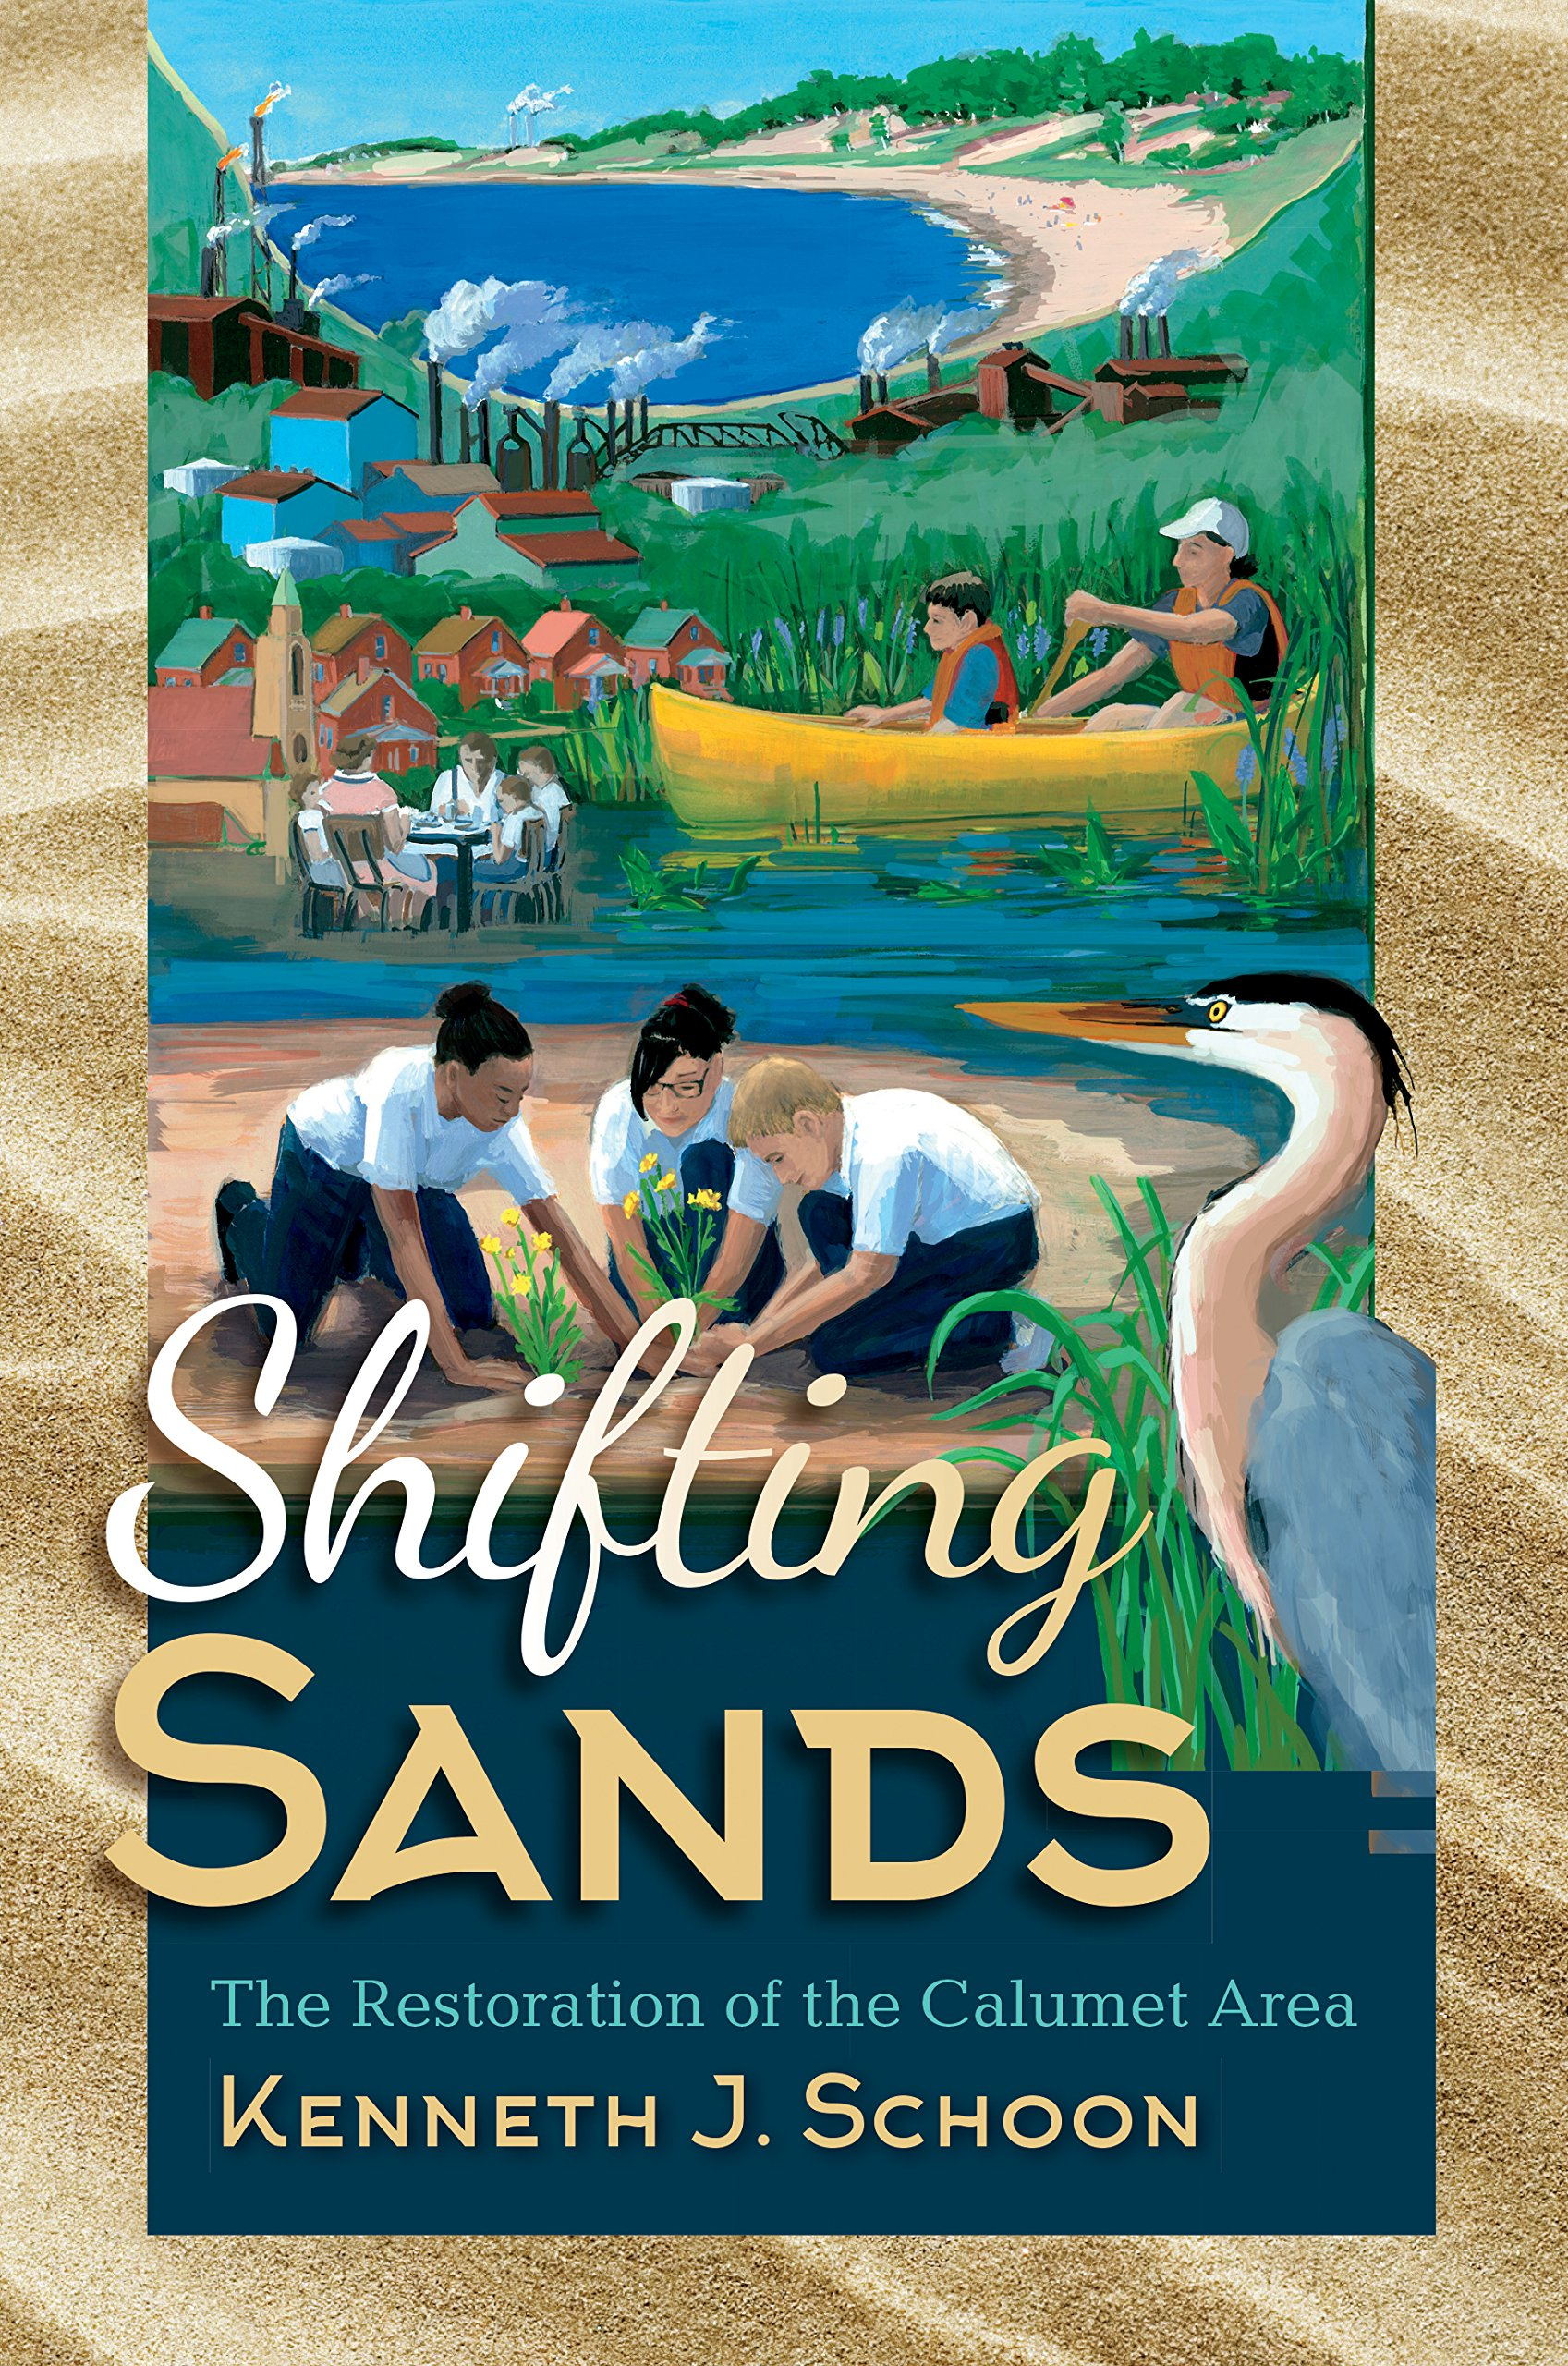 Shifting Sands: The Restoration of the Calumet Area pdf